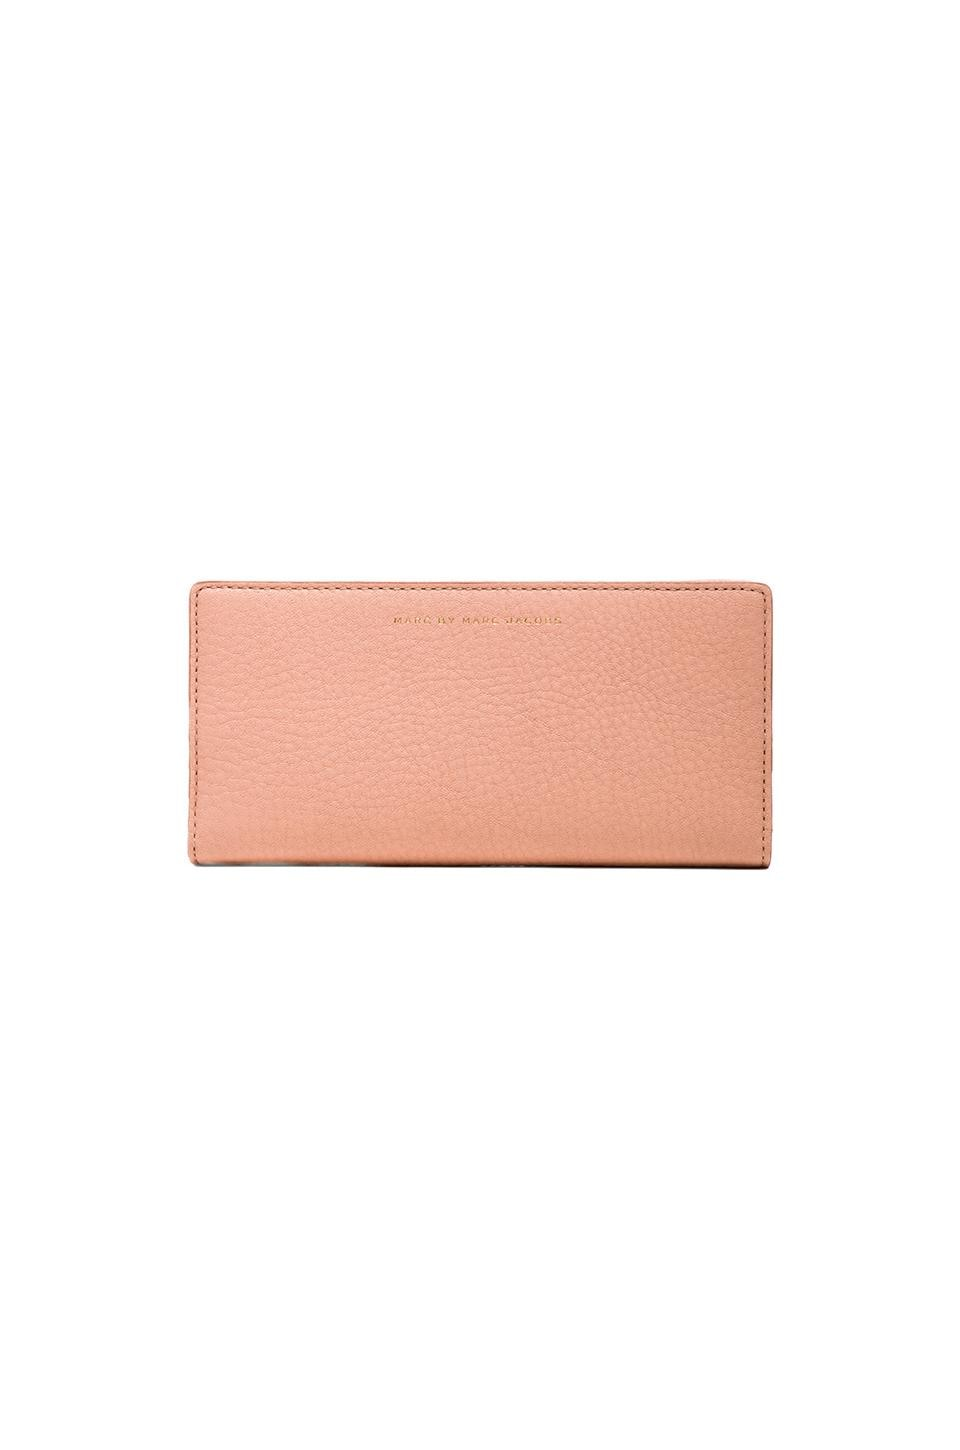 Marc by Marc Jacobs Sophisticato Tomoko Wallet in Rouge Multi